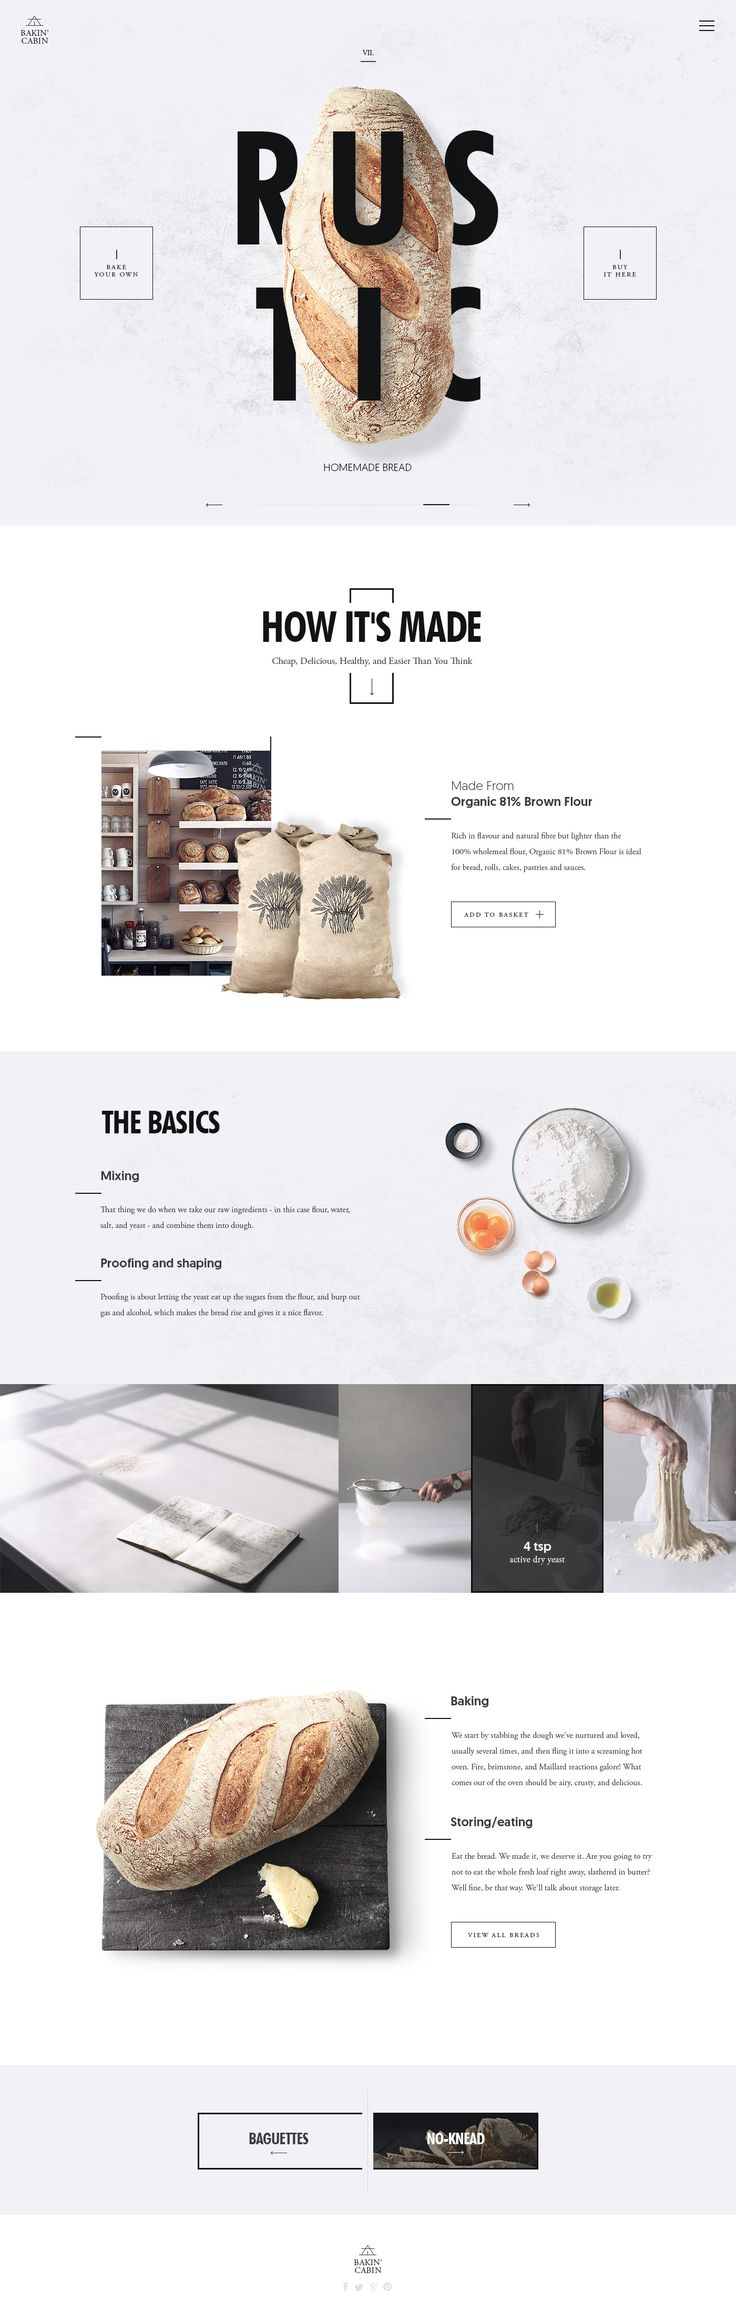 Bakin' Cabin layout on Inspirationde. We love this simple, elegant layout. #Sexywebdesign #Webdesign